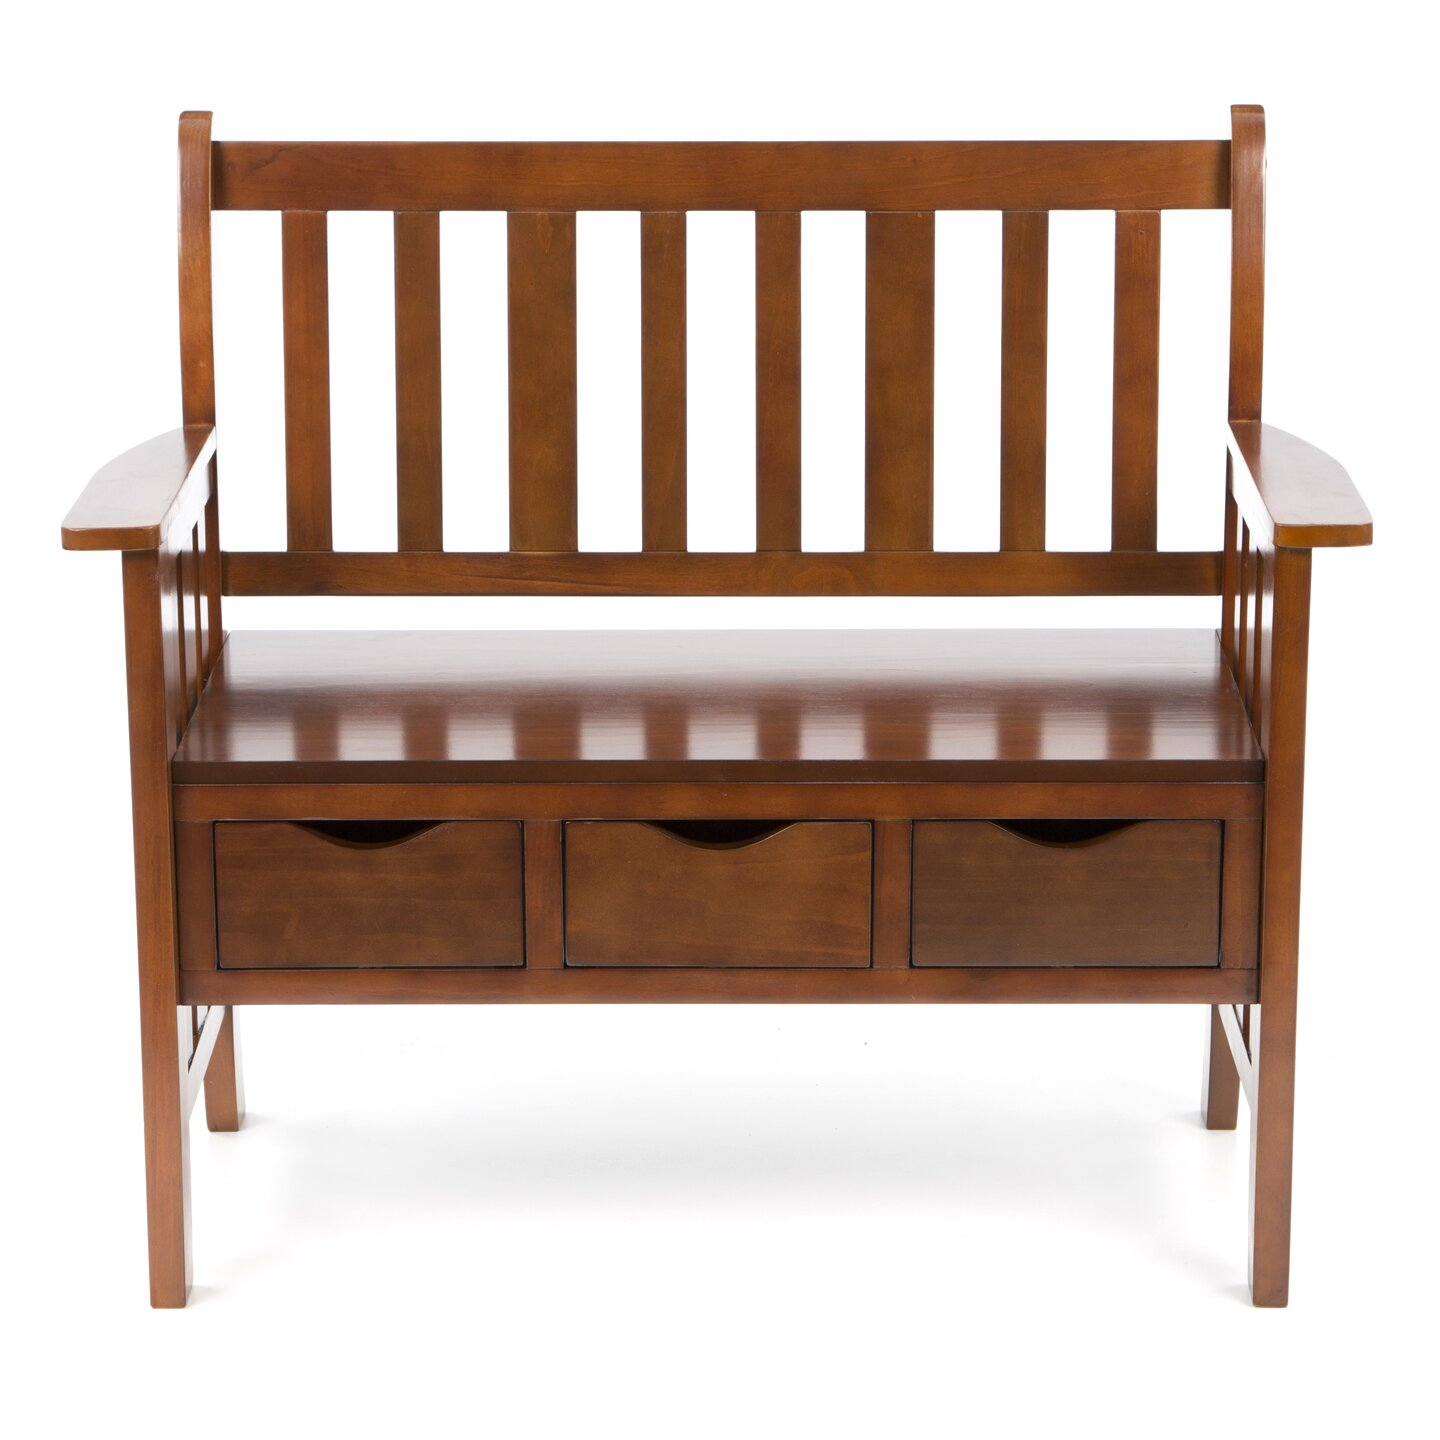 Amazing photo of  Home ® Davidson Storage Wood Entryway Bench & Reviews Wayfair with #734124 color and 1440x1440 pixels